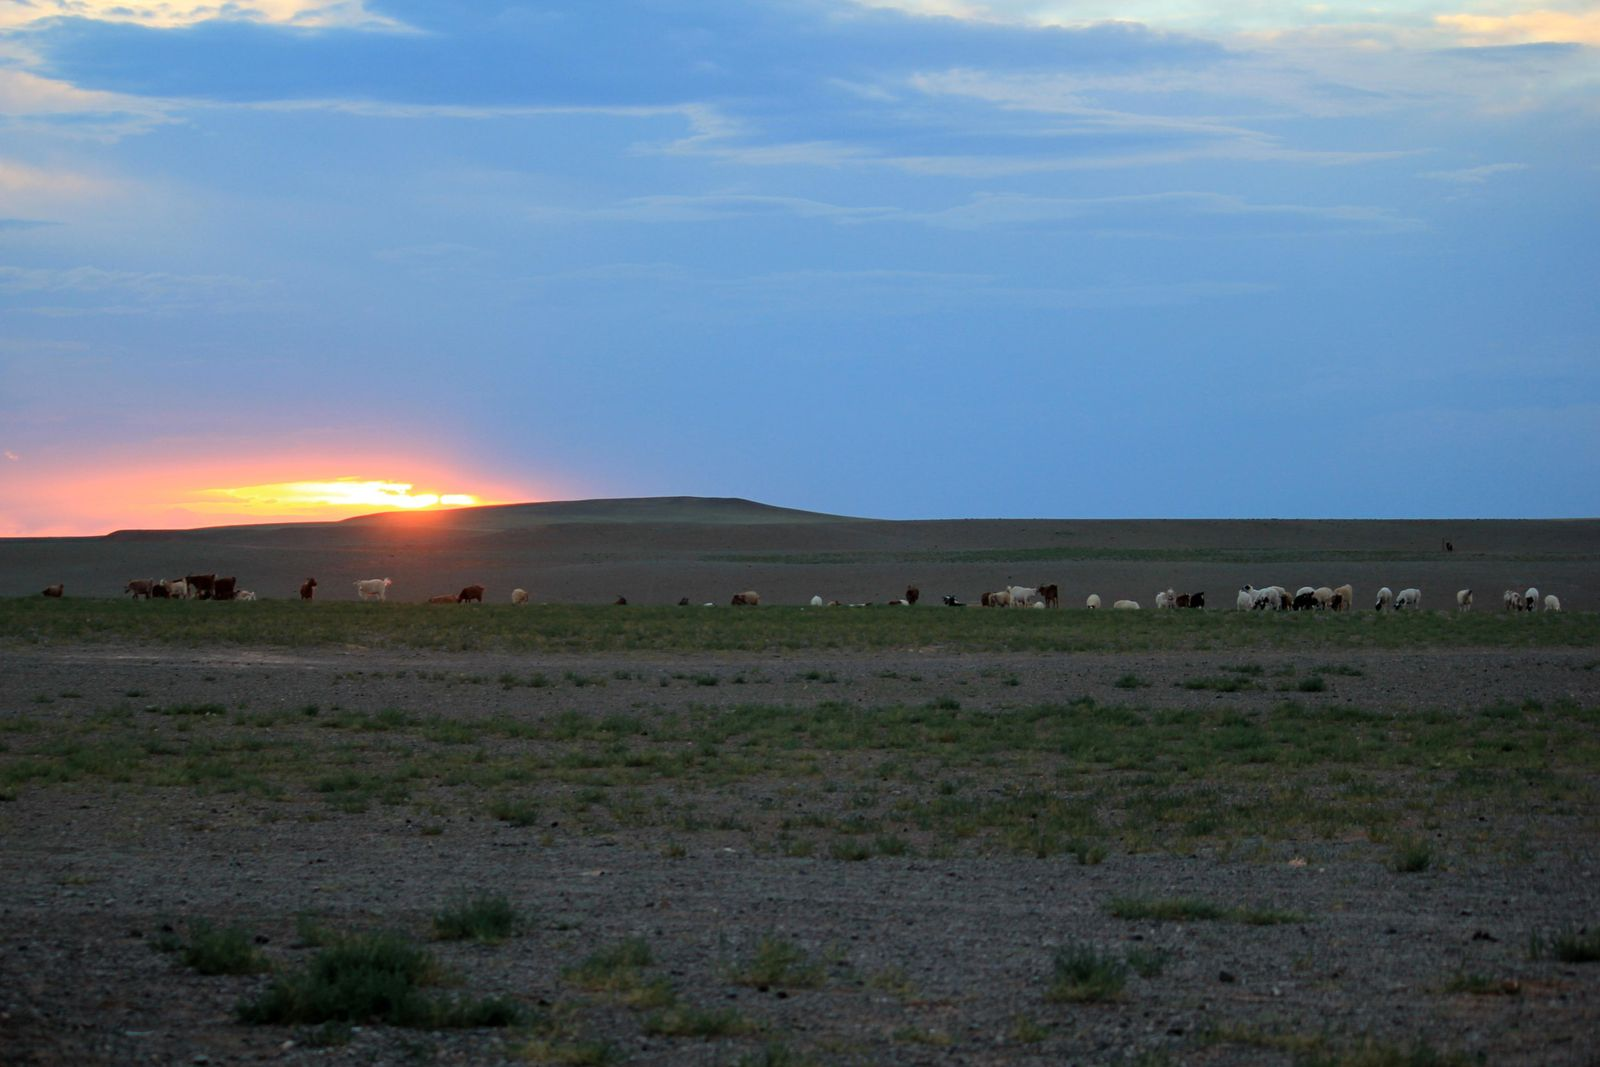 Mongolian pieces of life in the Gobi - Part 3